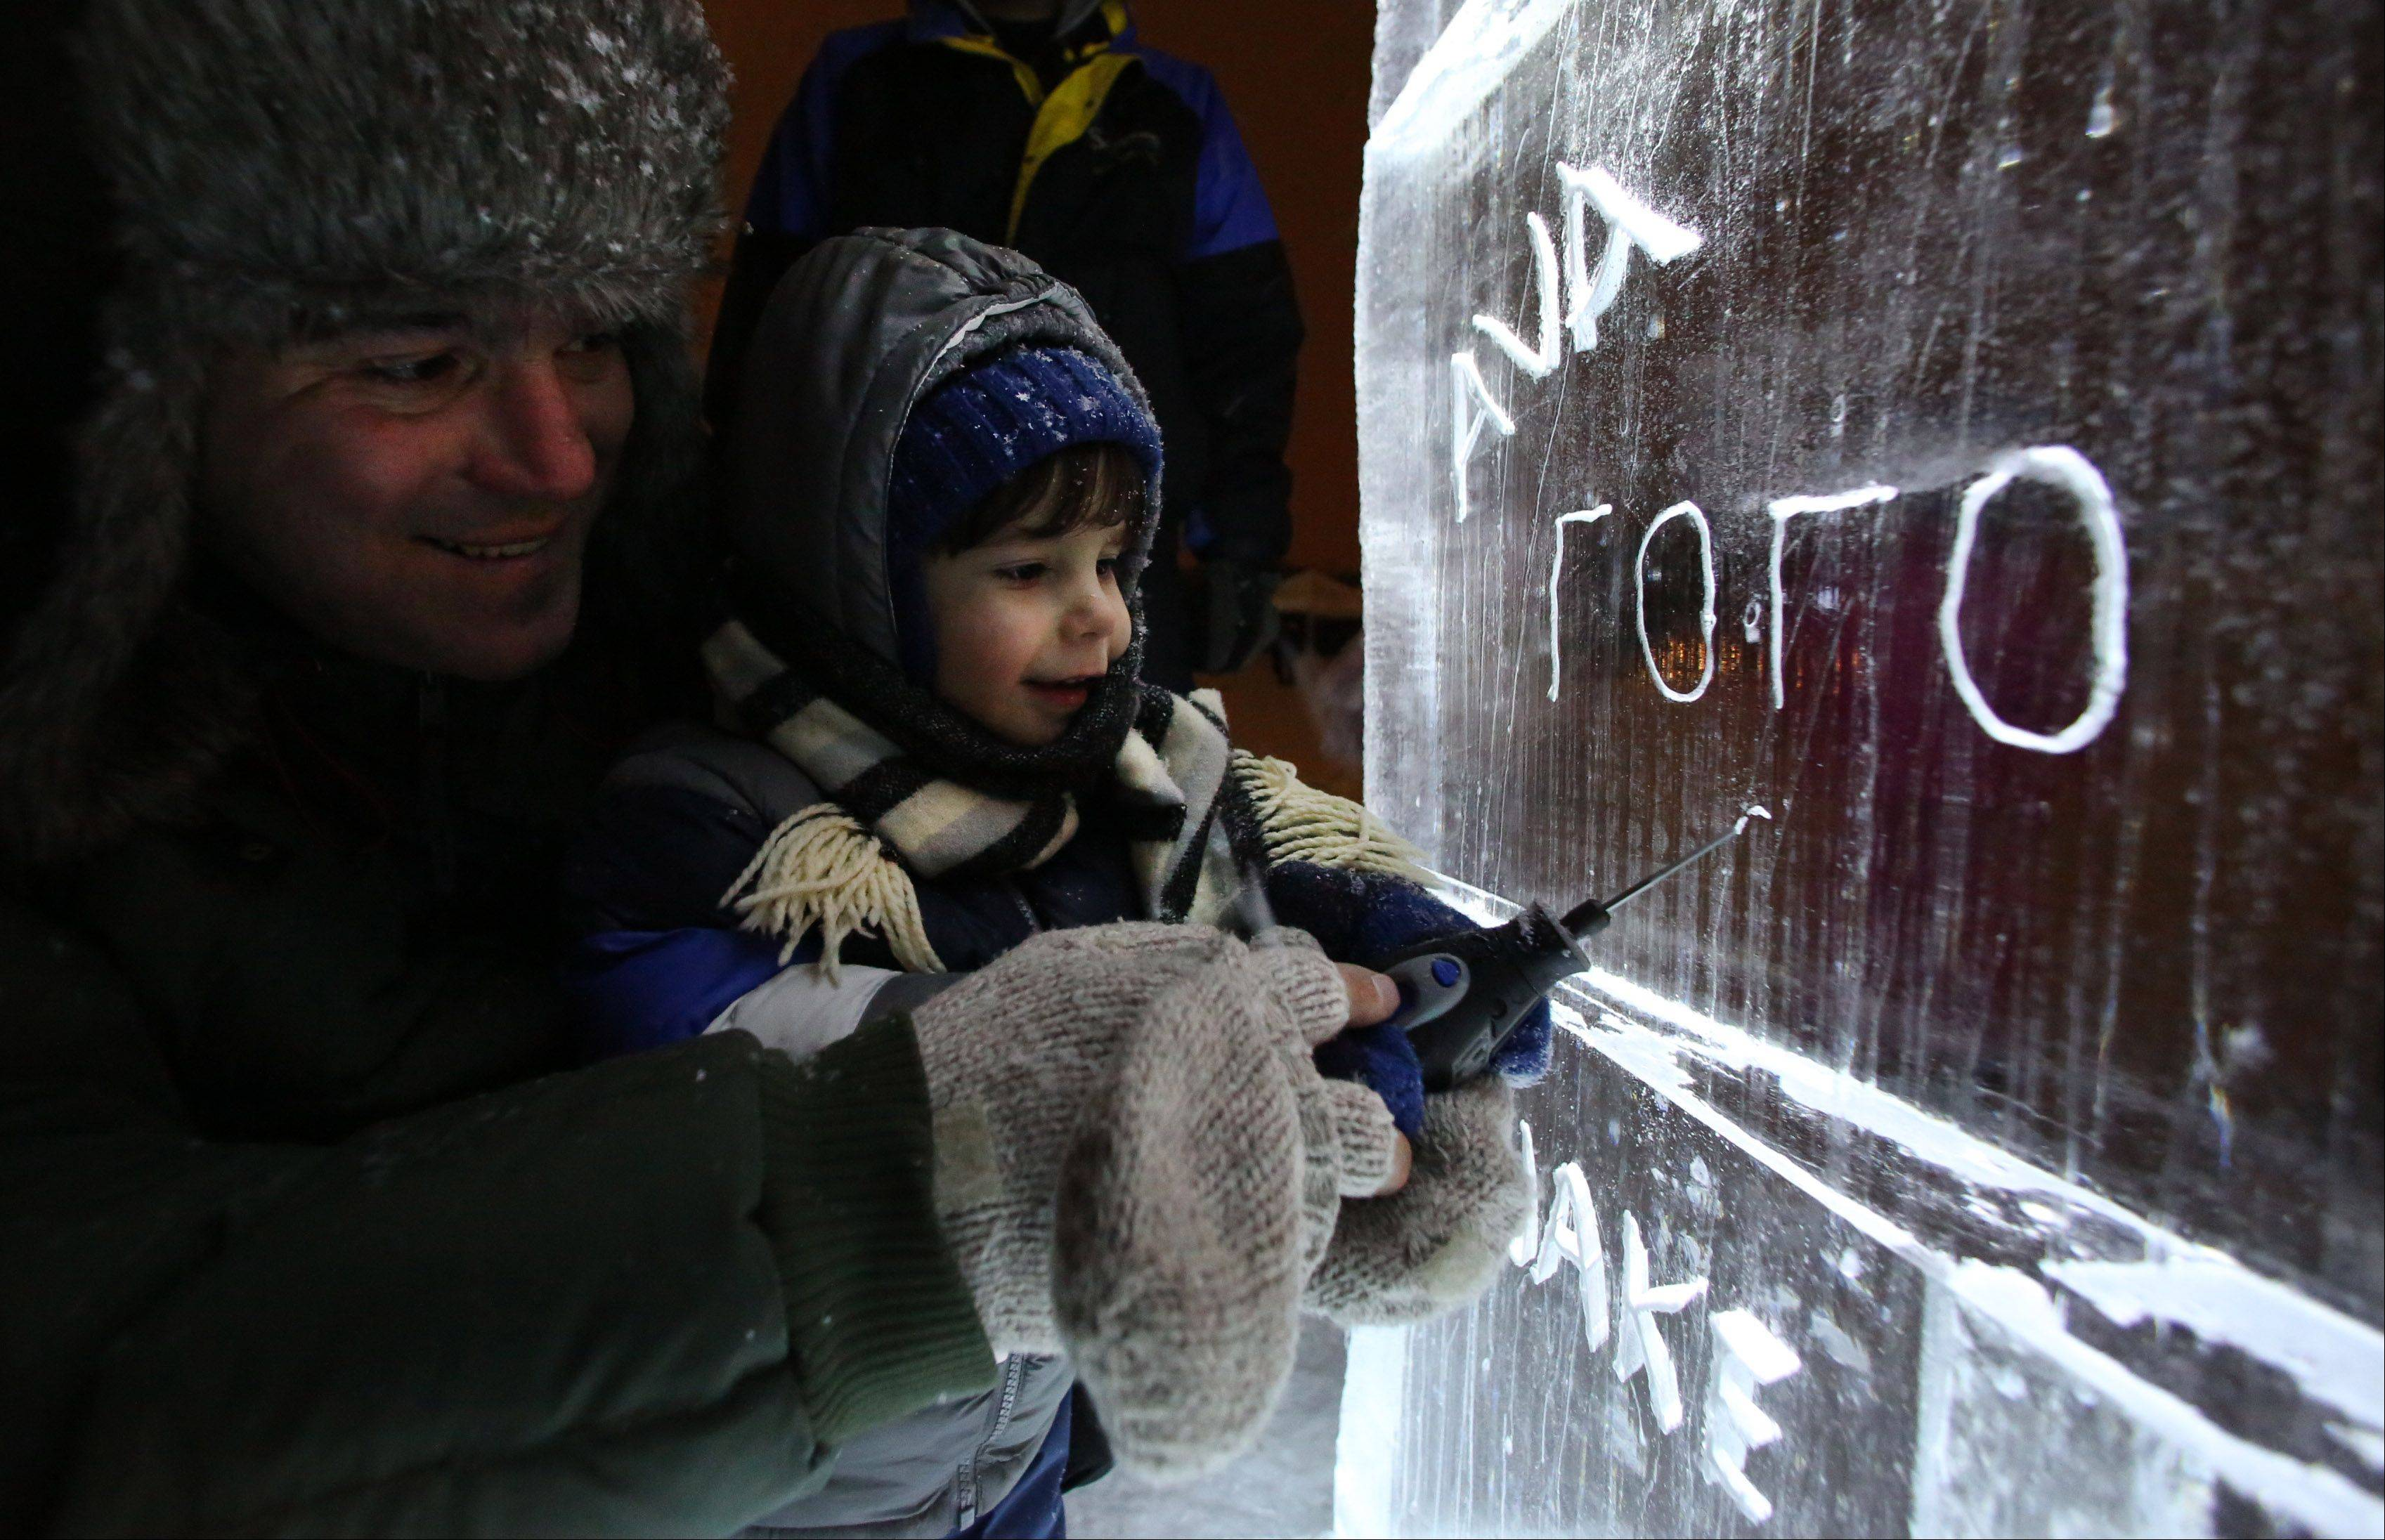 Two-year-old George Encher of Gurnee starts to carve his name in a large ice block while being held by his dad, also named George, on Friday night at the Gurnee Park District's annual Frosty Fest.